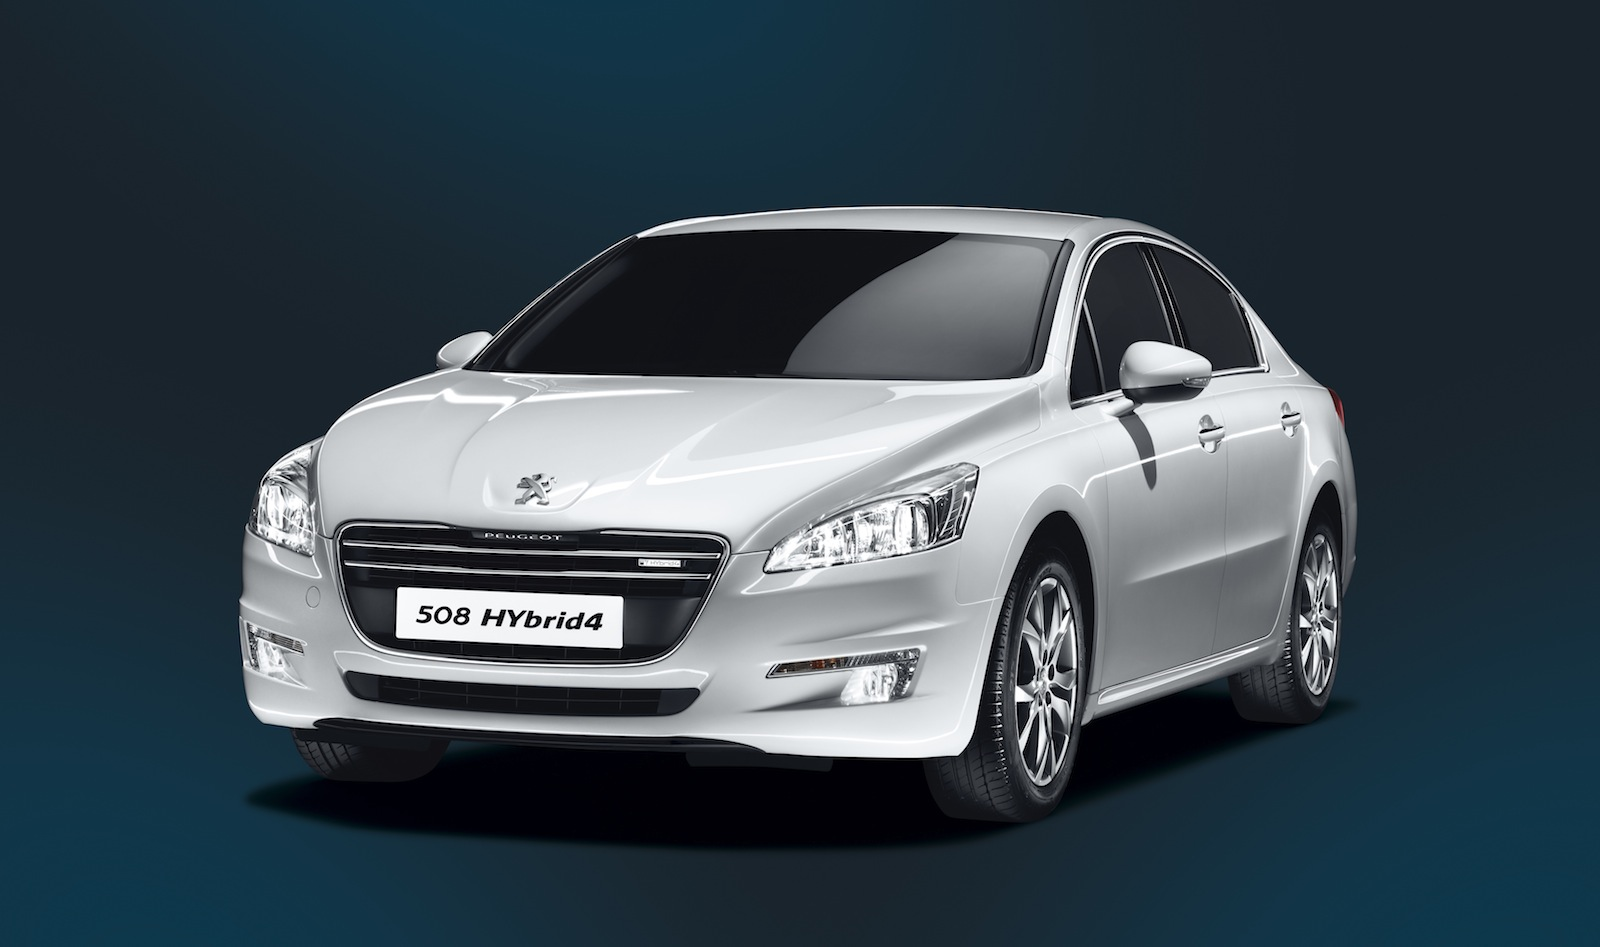 Peugeot 508 Hybrid4 Diesel Electric Large Sedan Launched